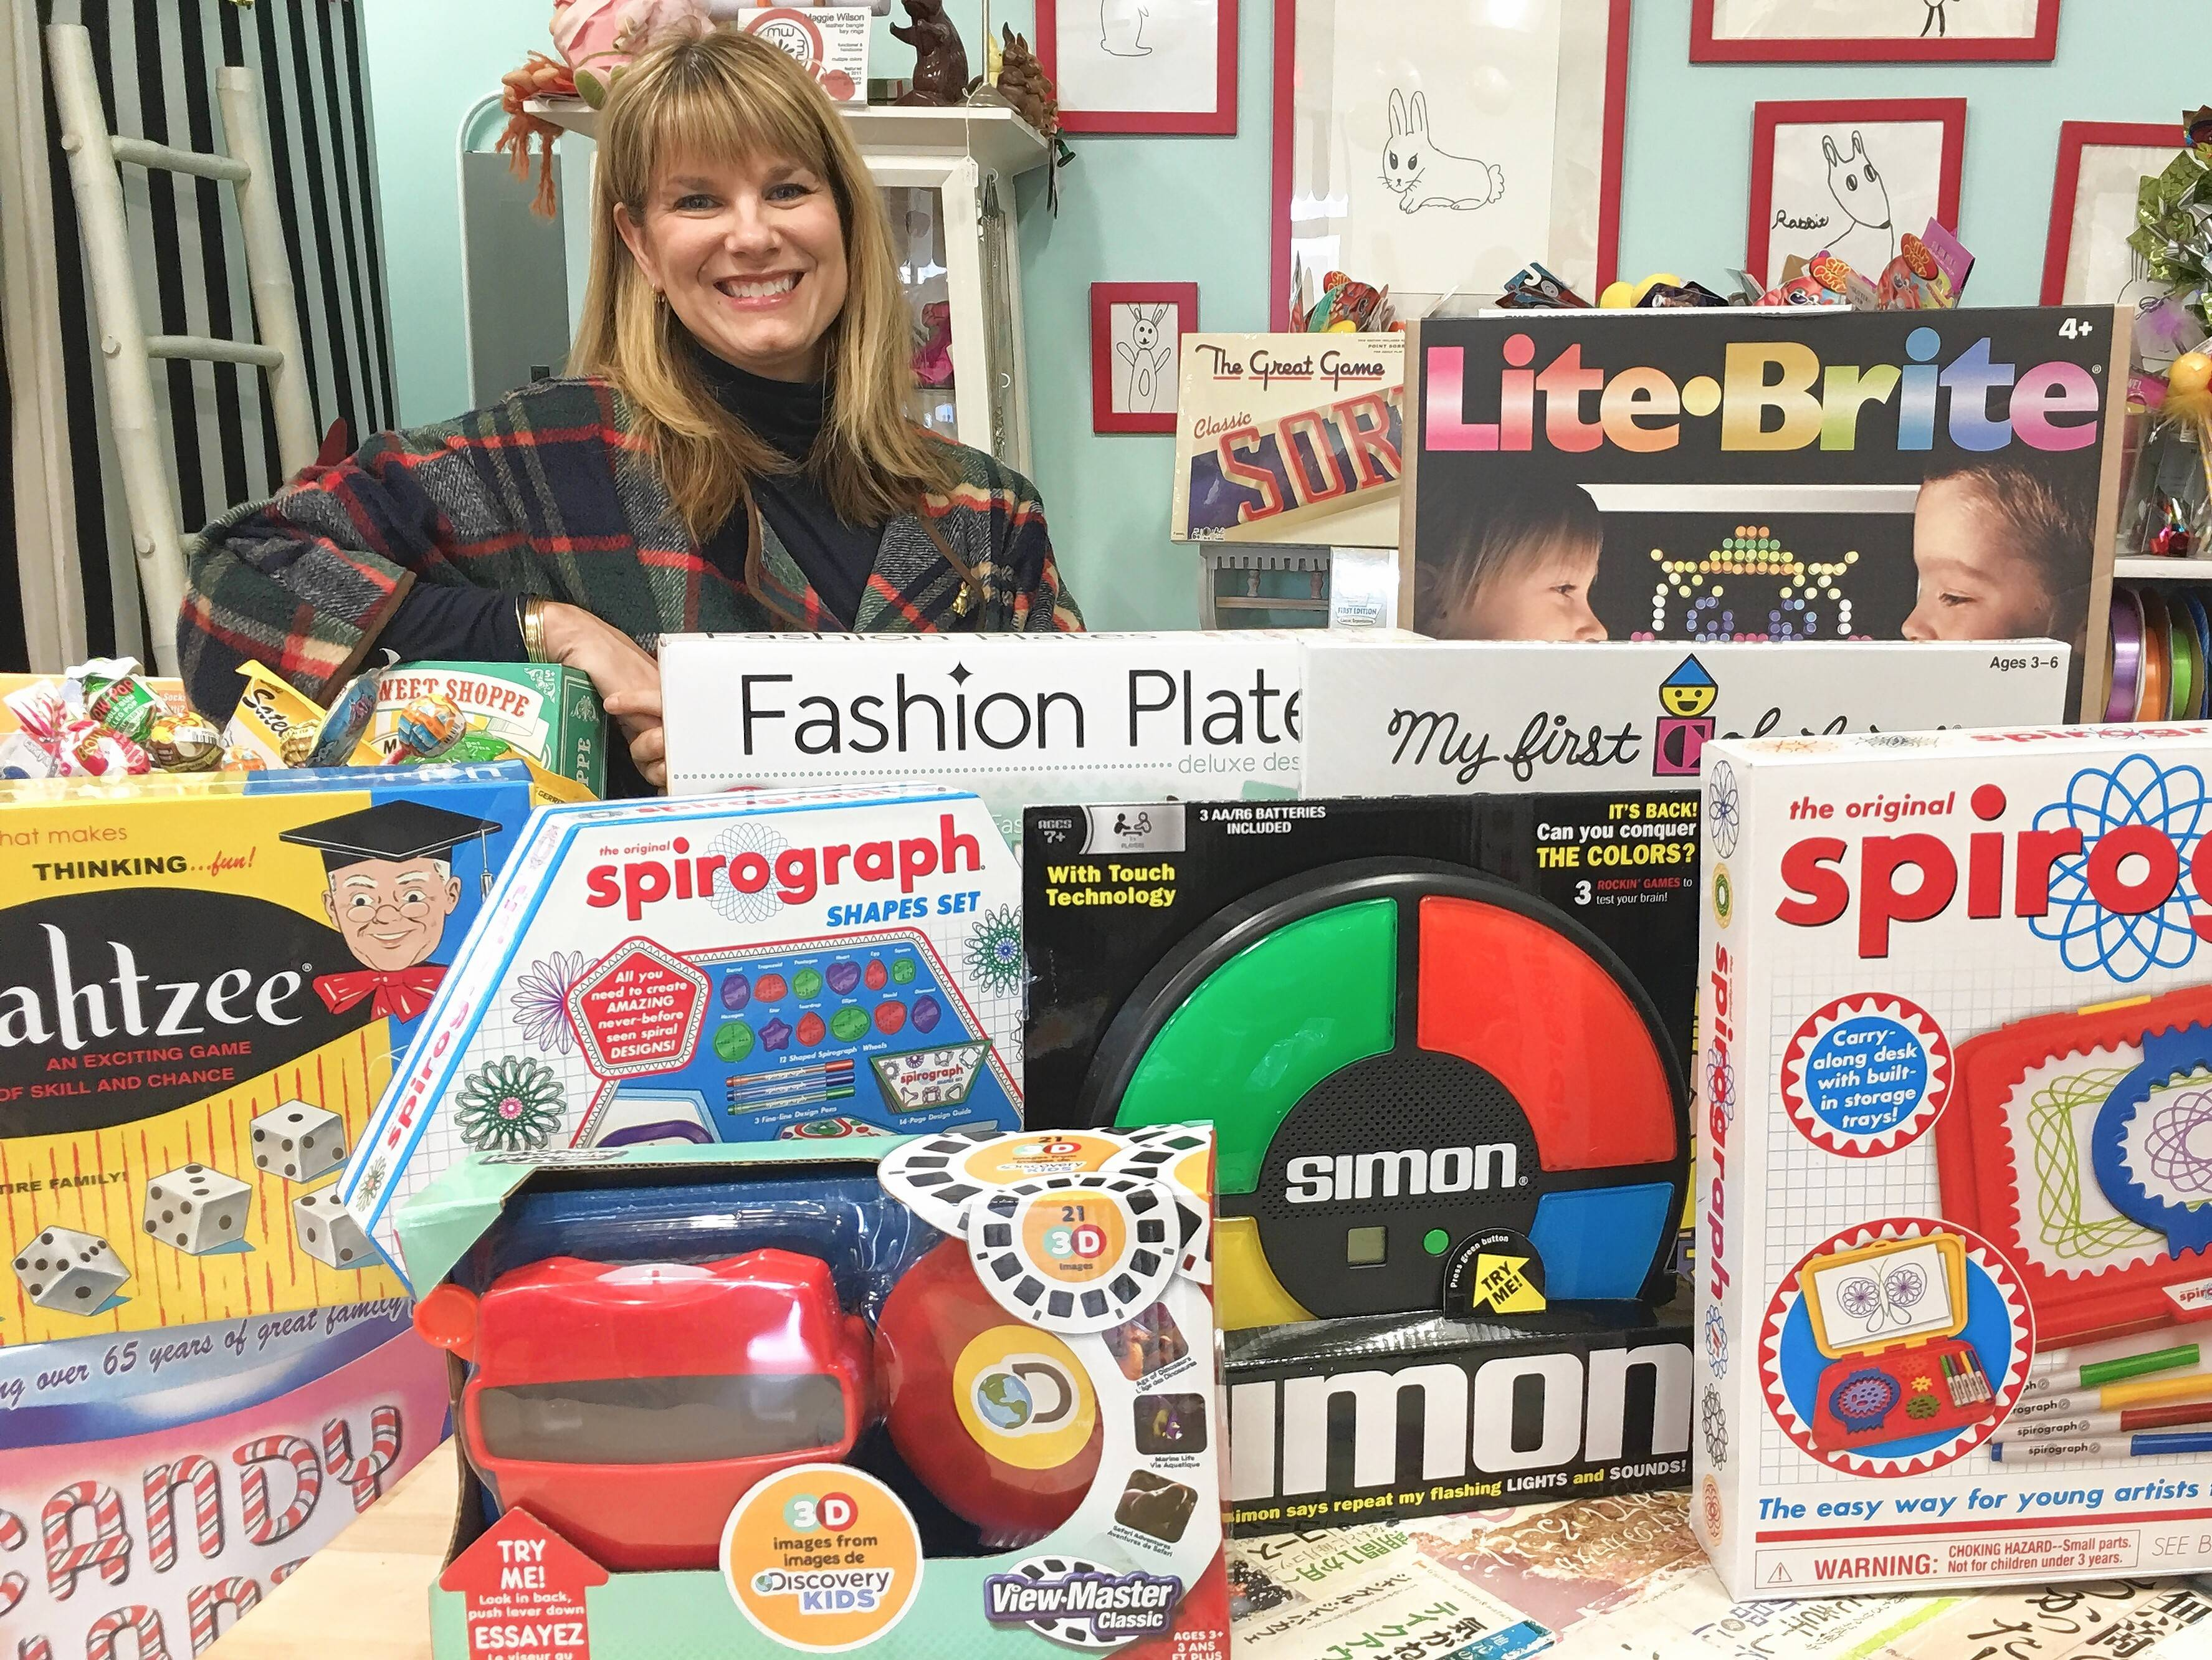 """There's this nostalgic trend with parents wanting to recapture their youth,"" said Kate Erickson, marketing consultant for Beat Street Toys in Arlington Heights. Examples of items sold in her store are scratch-and-sniff smelly stickers, a new of version of 1970s-era Lite-Brite toy, macramé pot holders, Fashion Plates designing kits, and latch hook rugs."